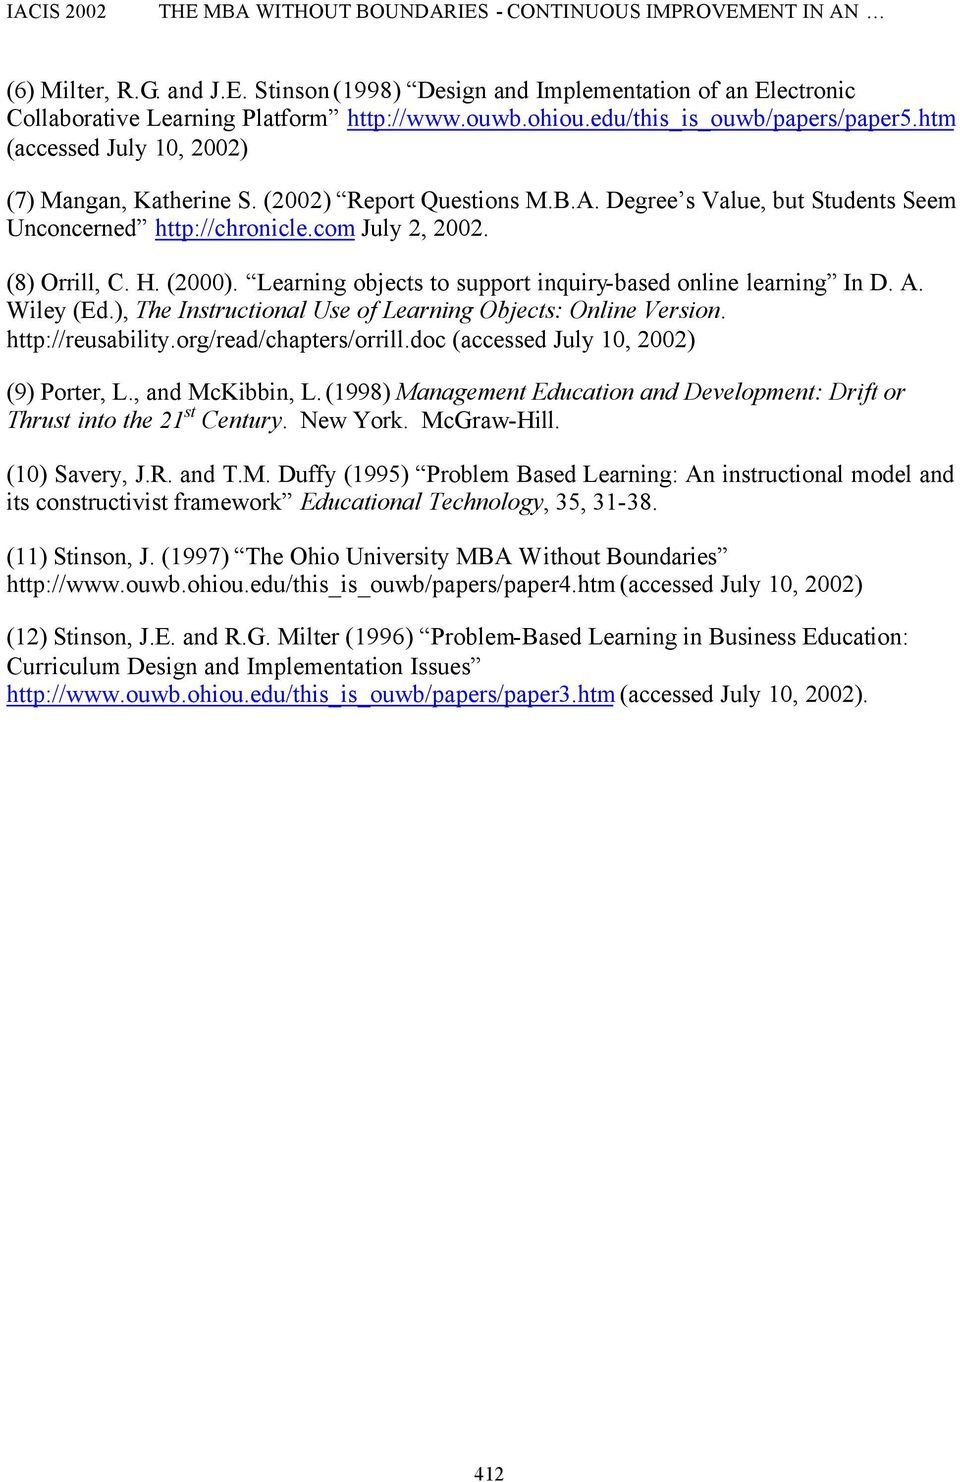 com July 2, 2002. (8) Orrill, C. H. (2000). Learning objects to support inquiry-based online learning In D. A. Wiley (Ed.), The Instructional Use of Learning Objects: Online Version.